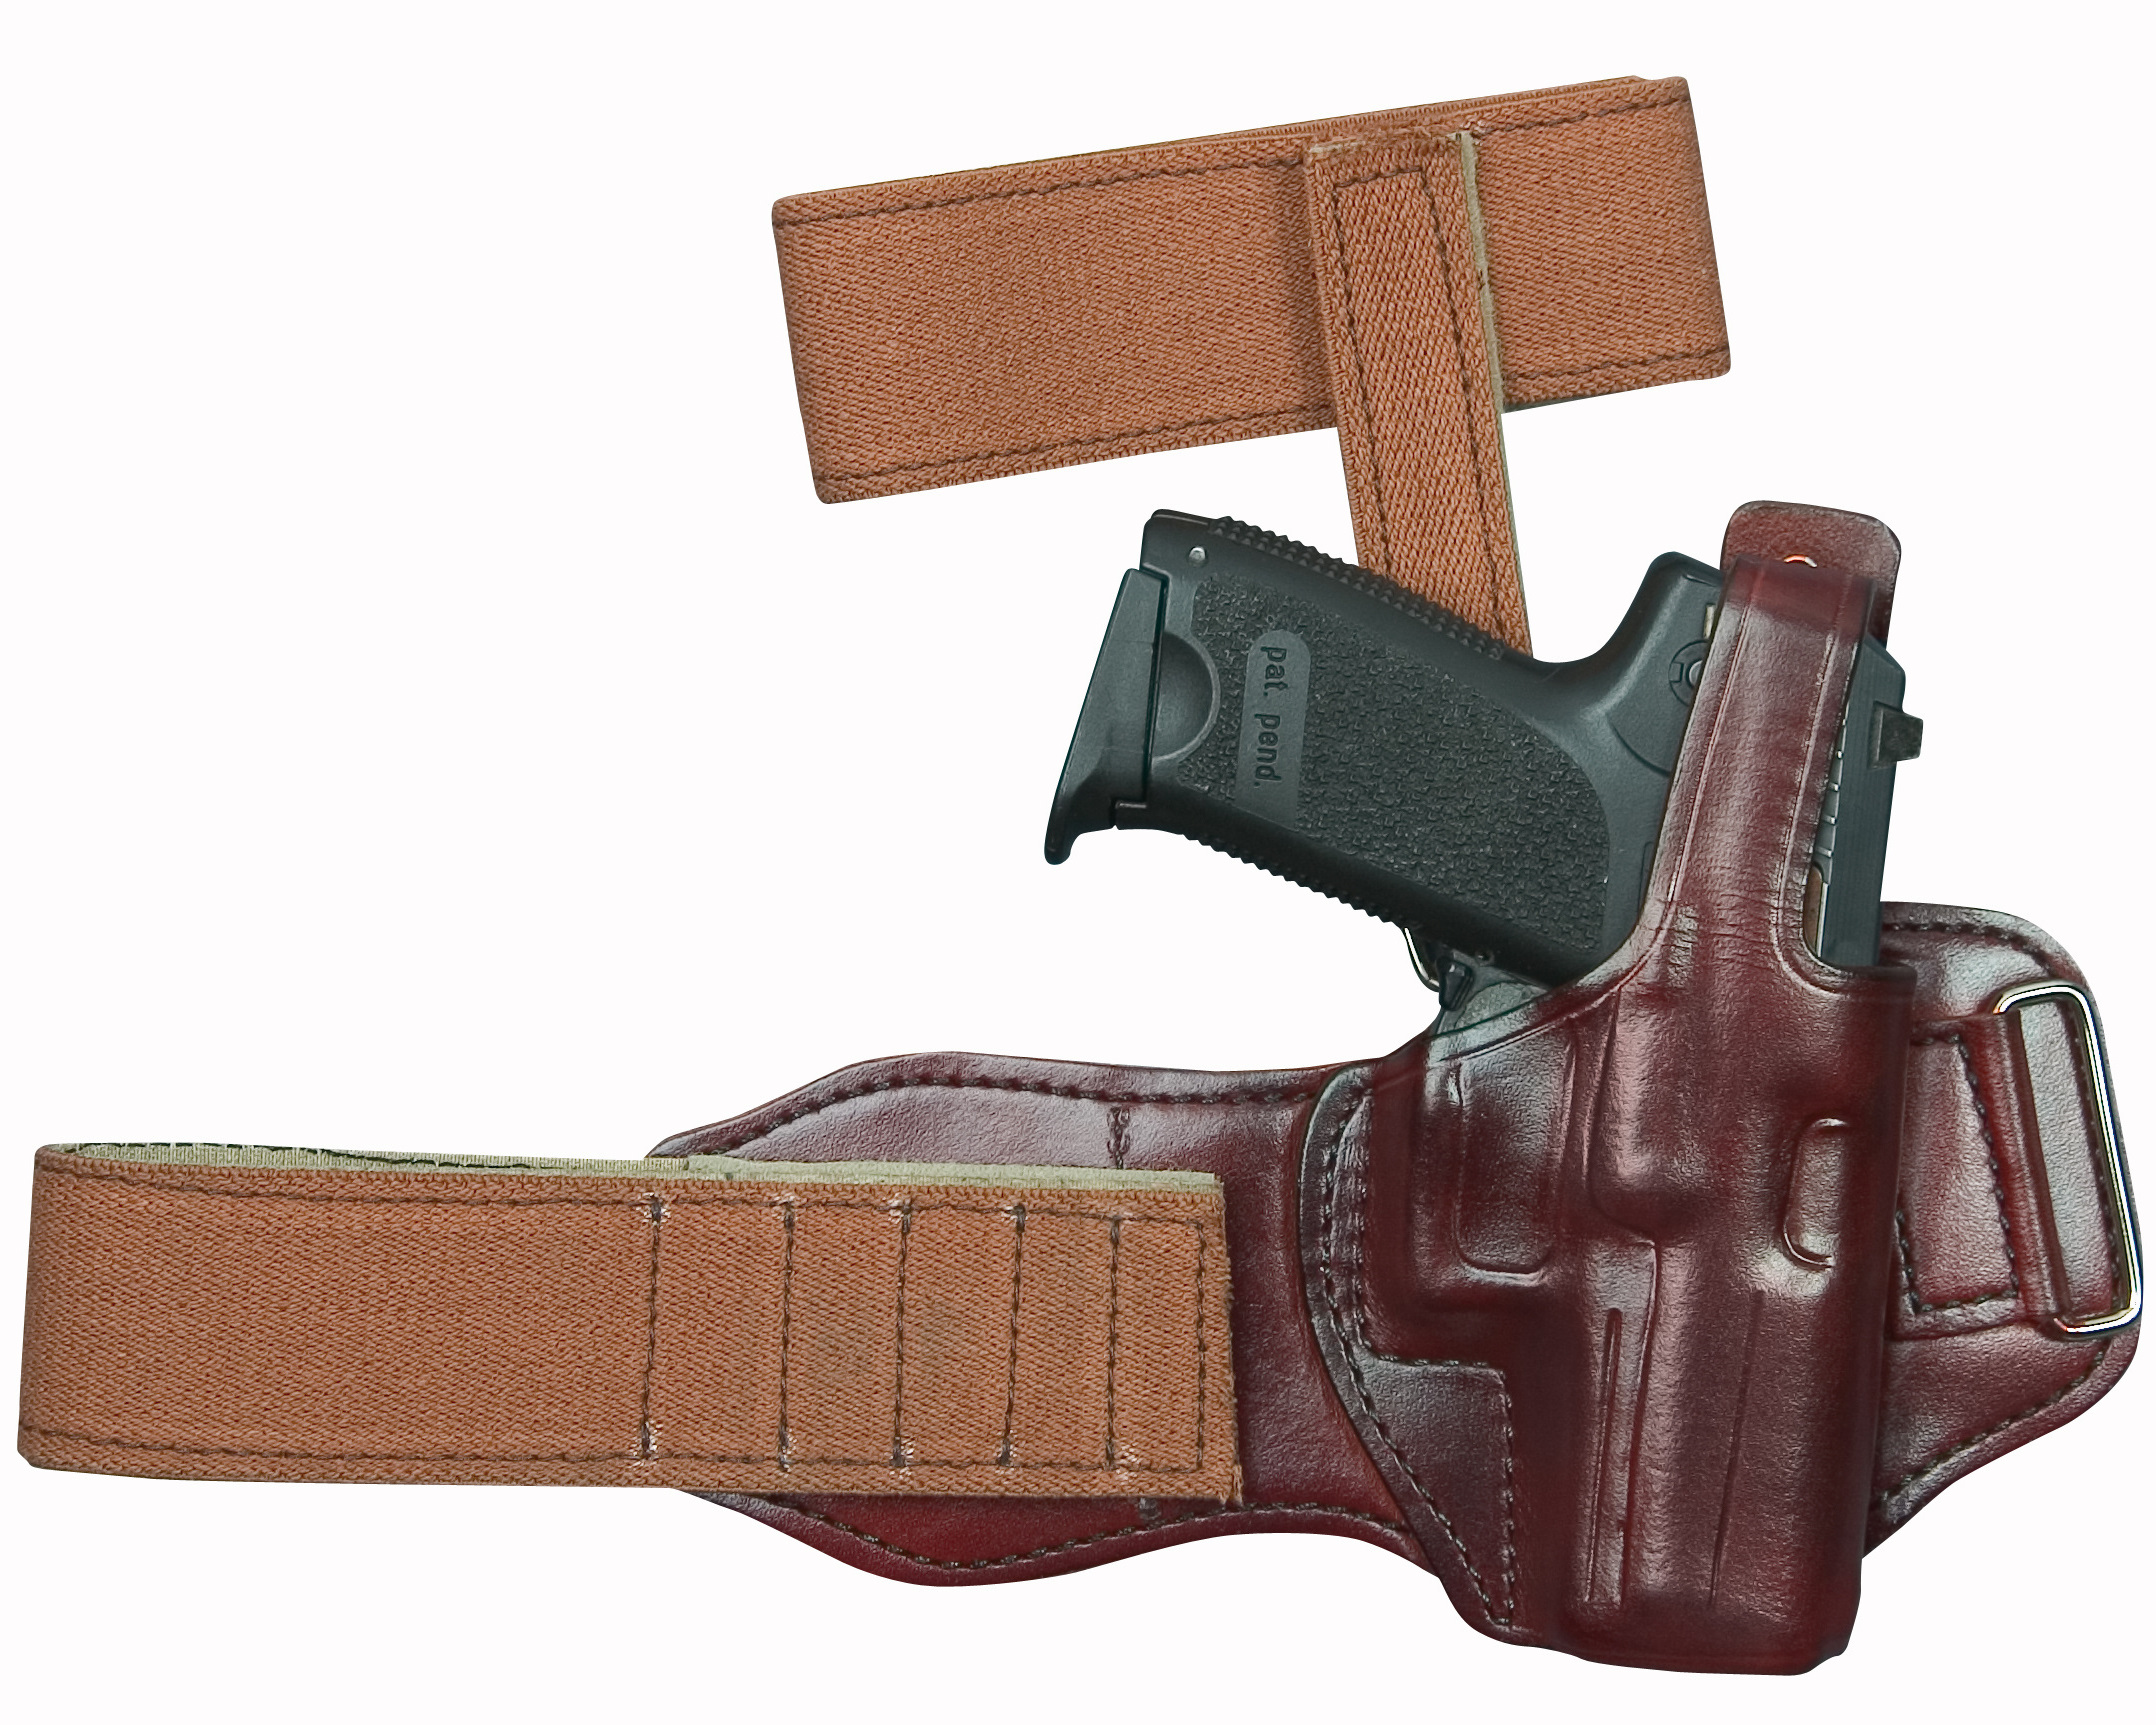 H760-ANKLE HOLSTER